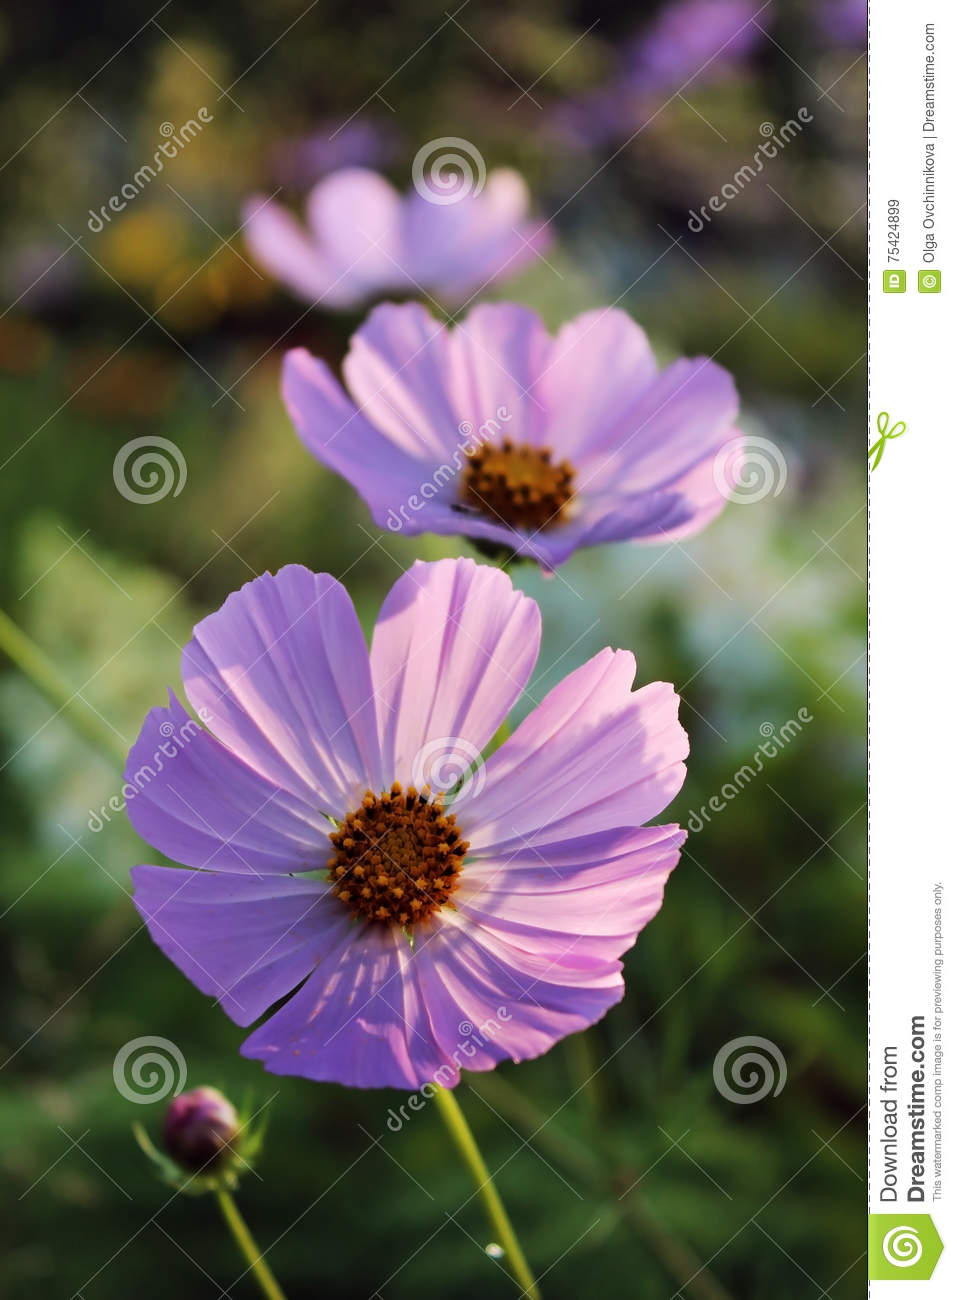 Pink Purple Flower Like A Daisy In The Light Of The Setting Sun